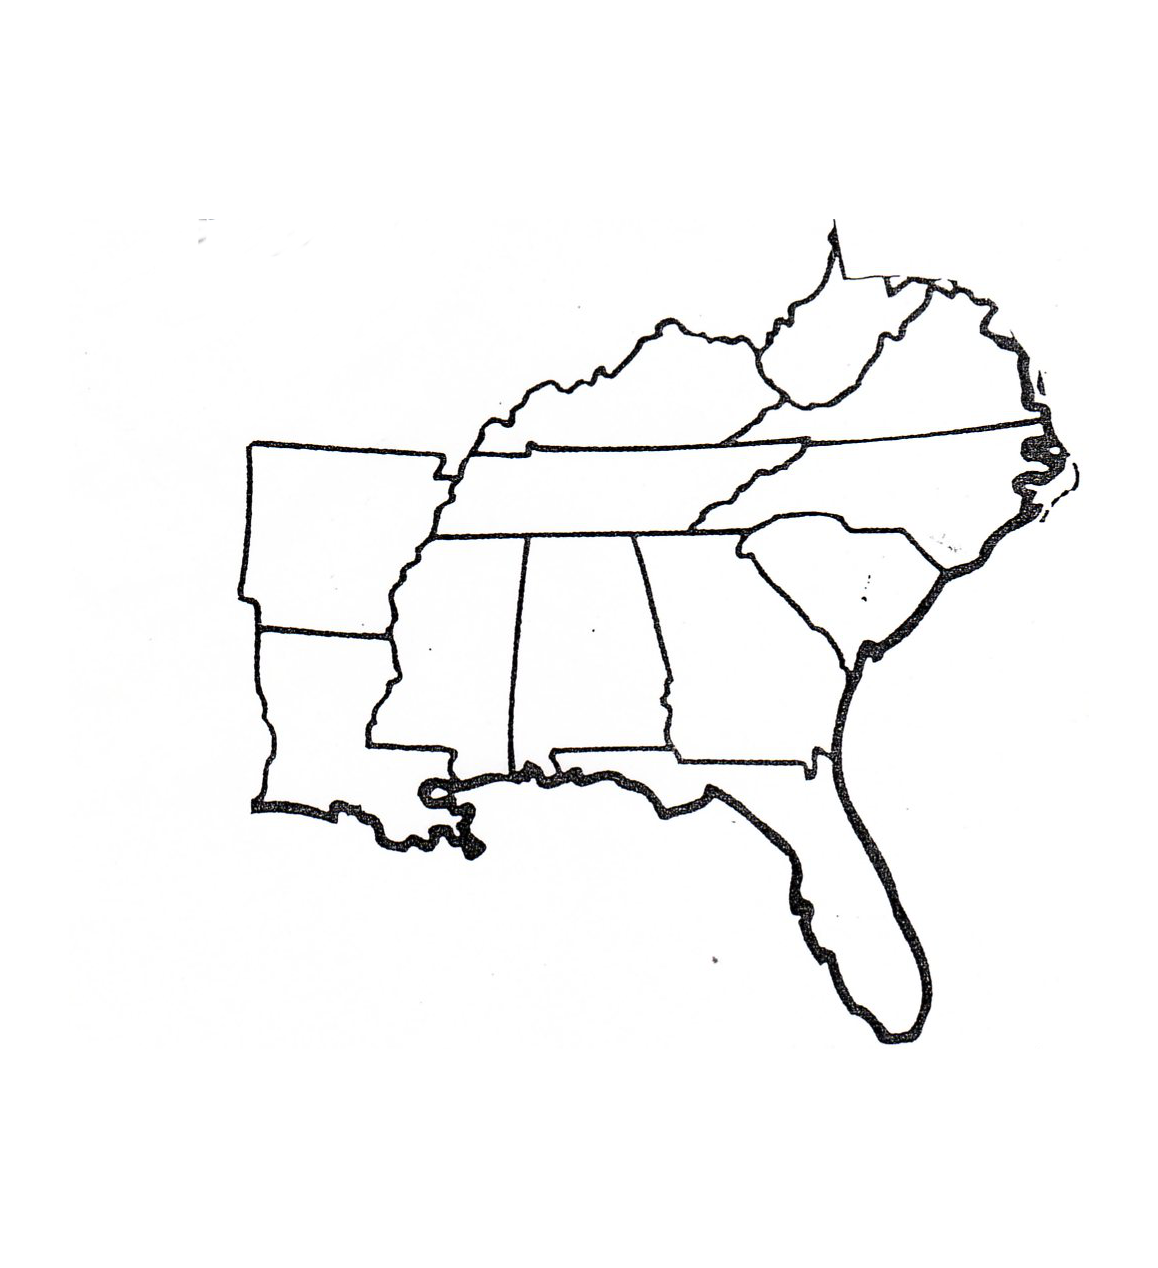 Blank Map Of Southeast Region Within Us